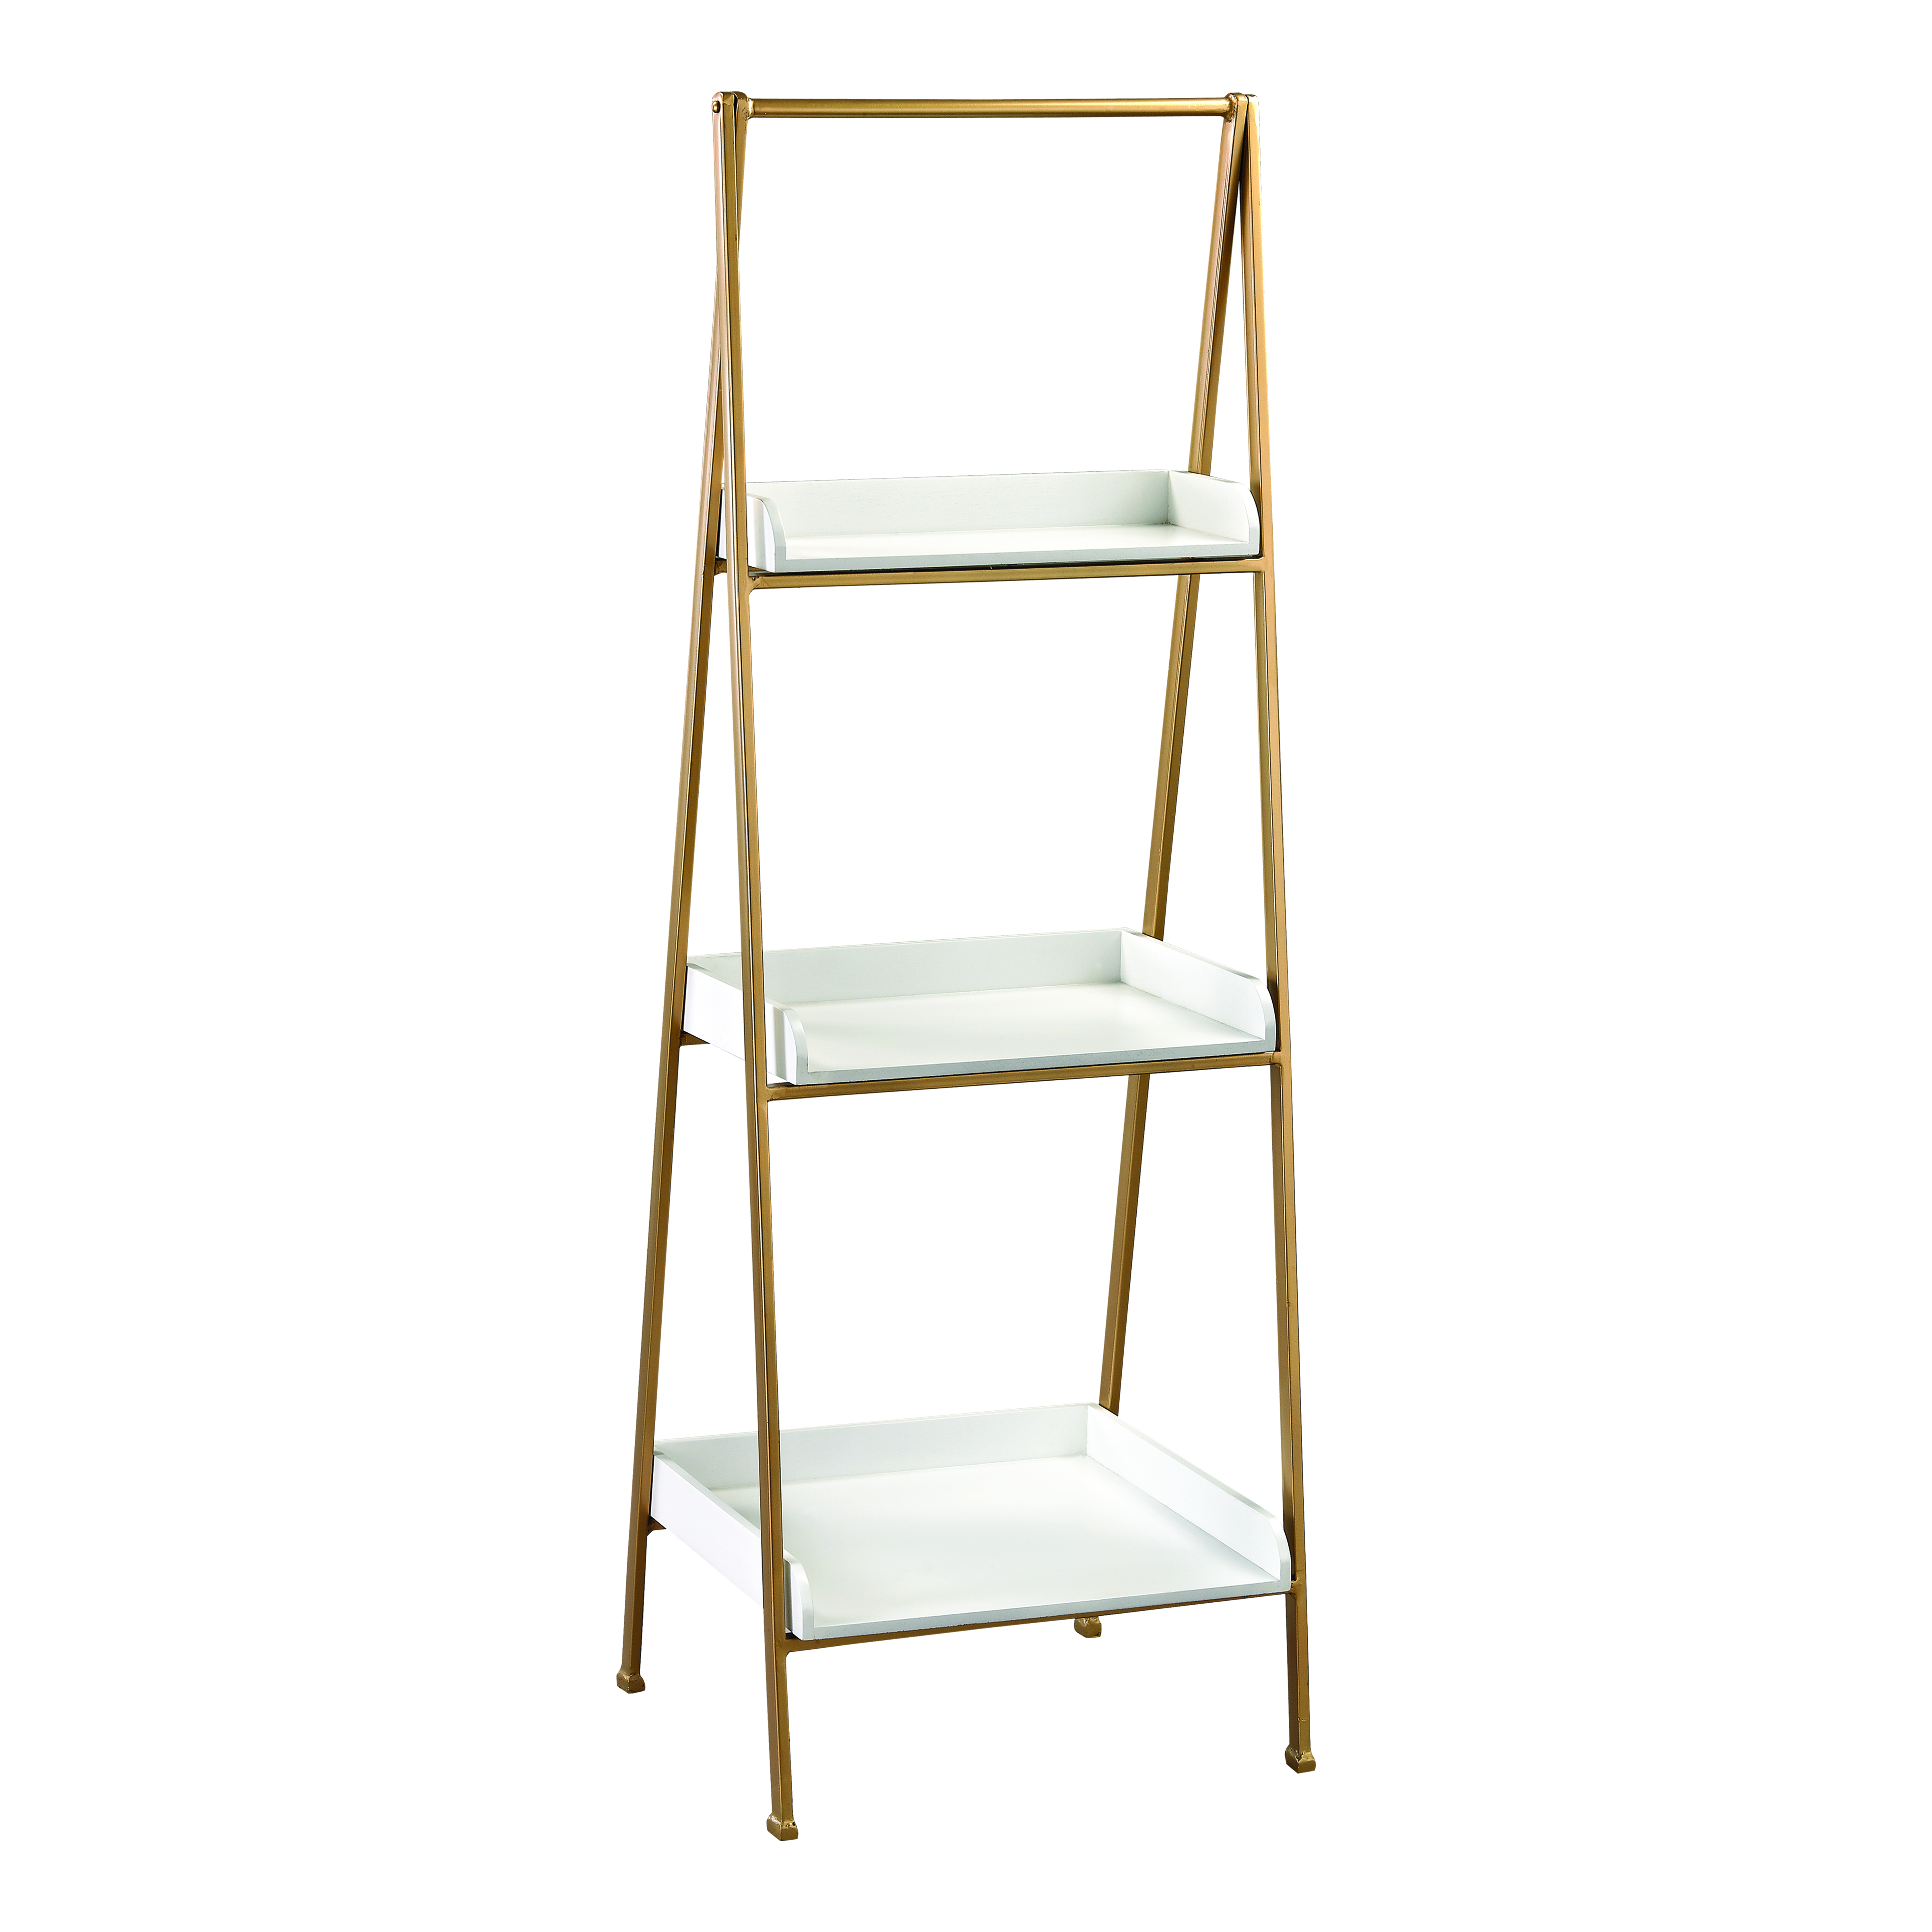 Kline Accent Shelf in White And Gold 351-10205 | ELK Home